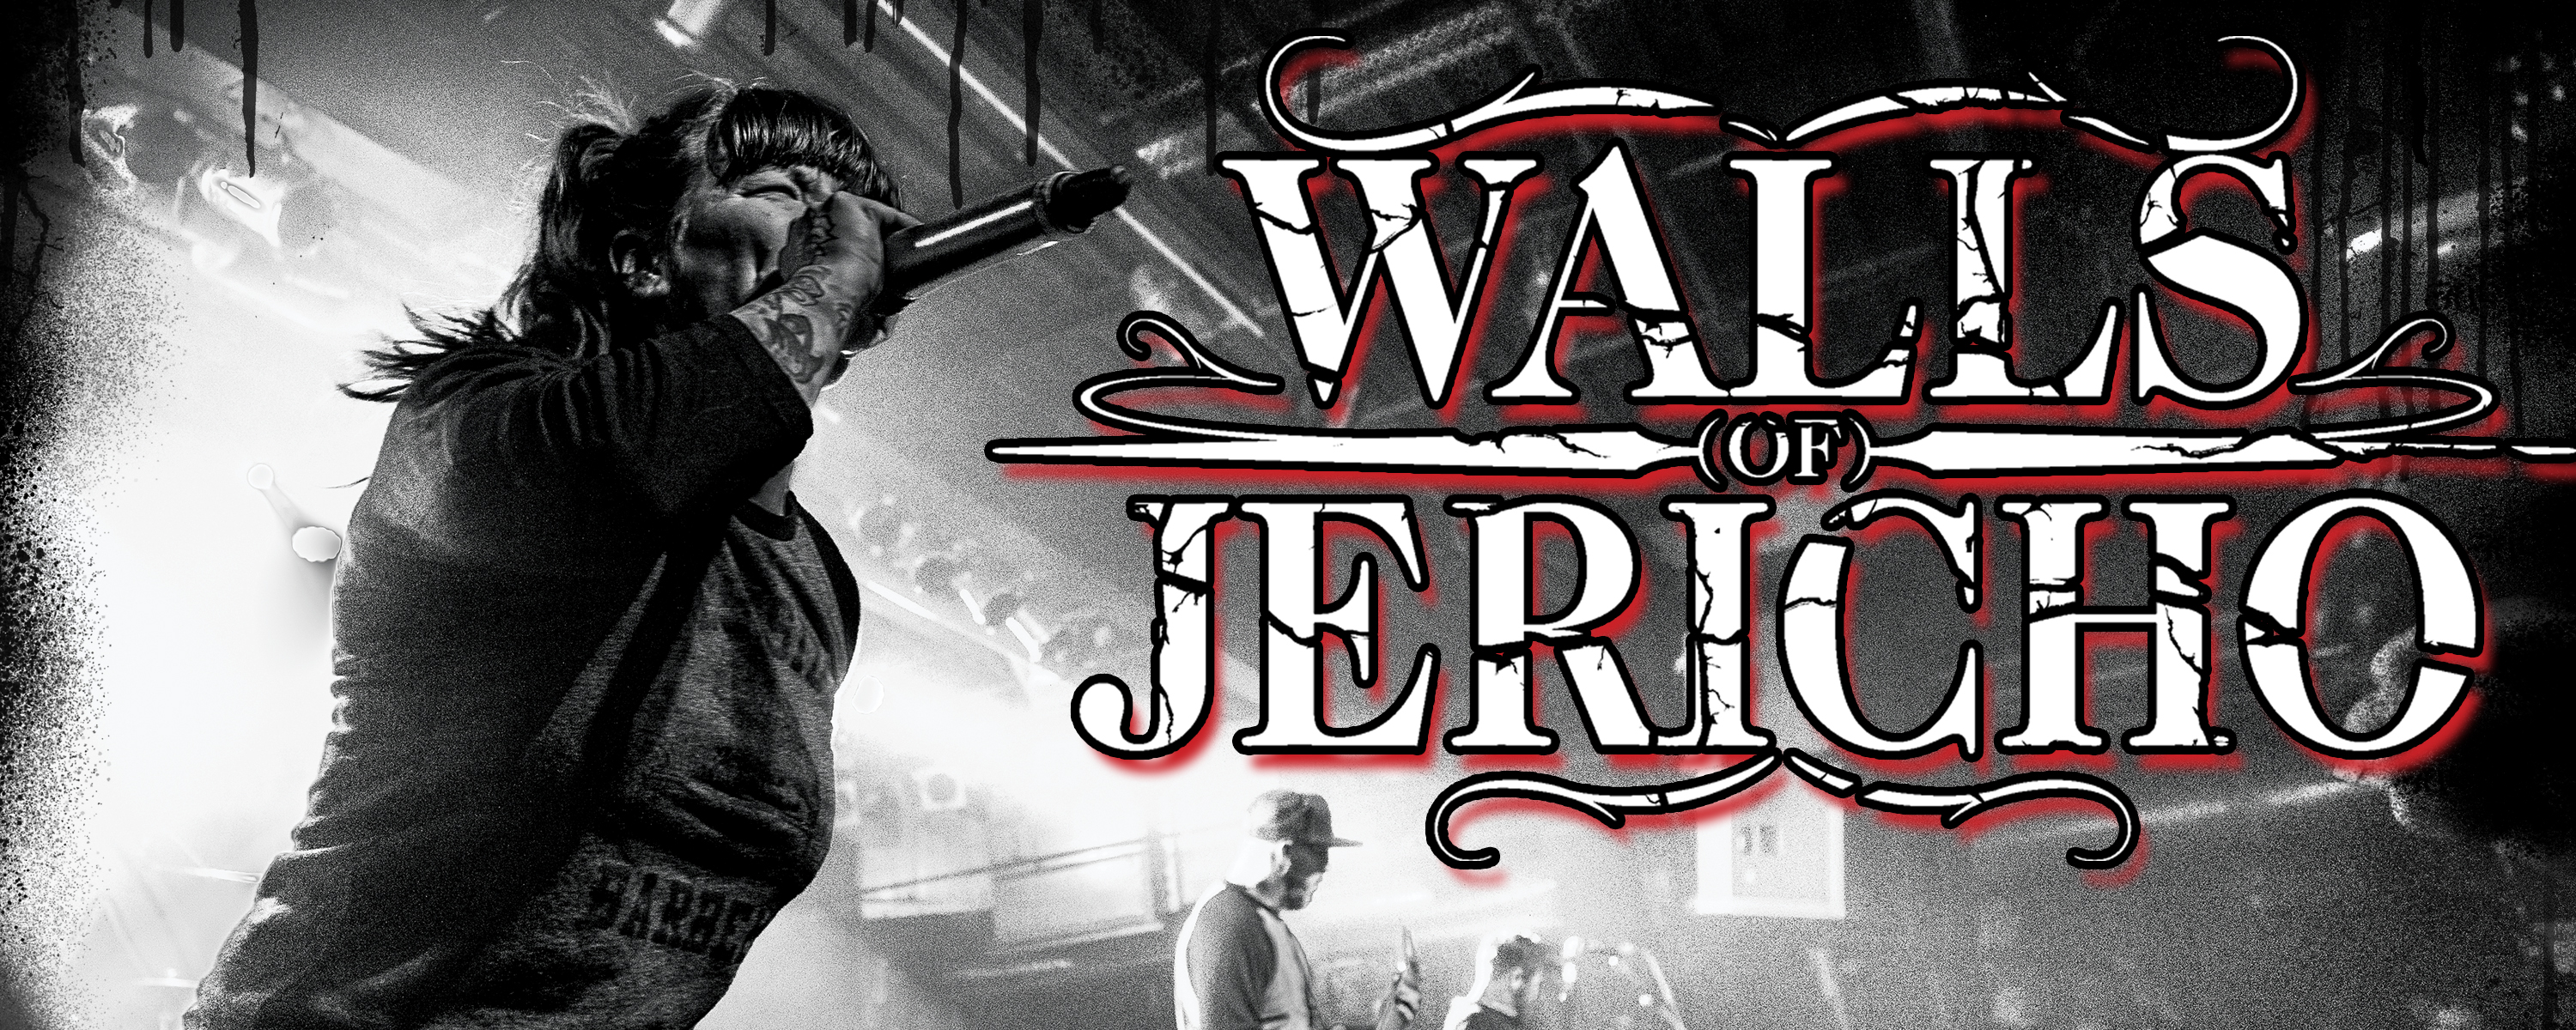 WALLS OF JERICHO - TOURDATES